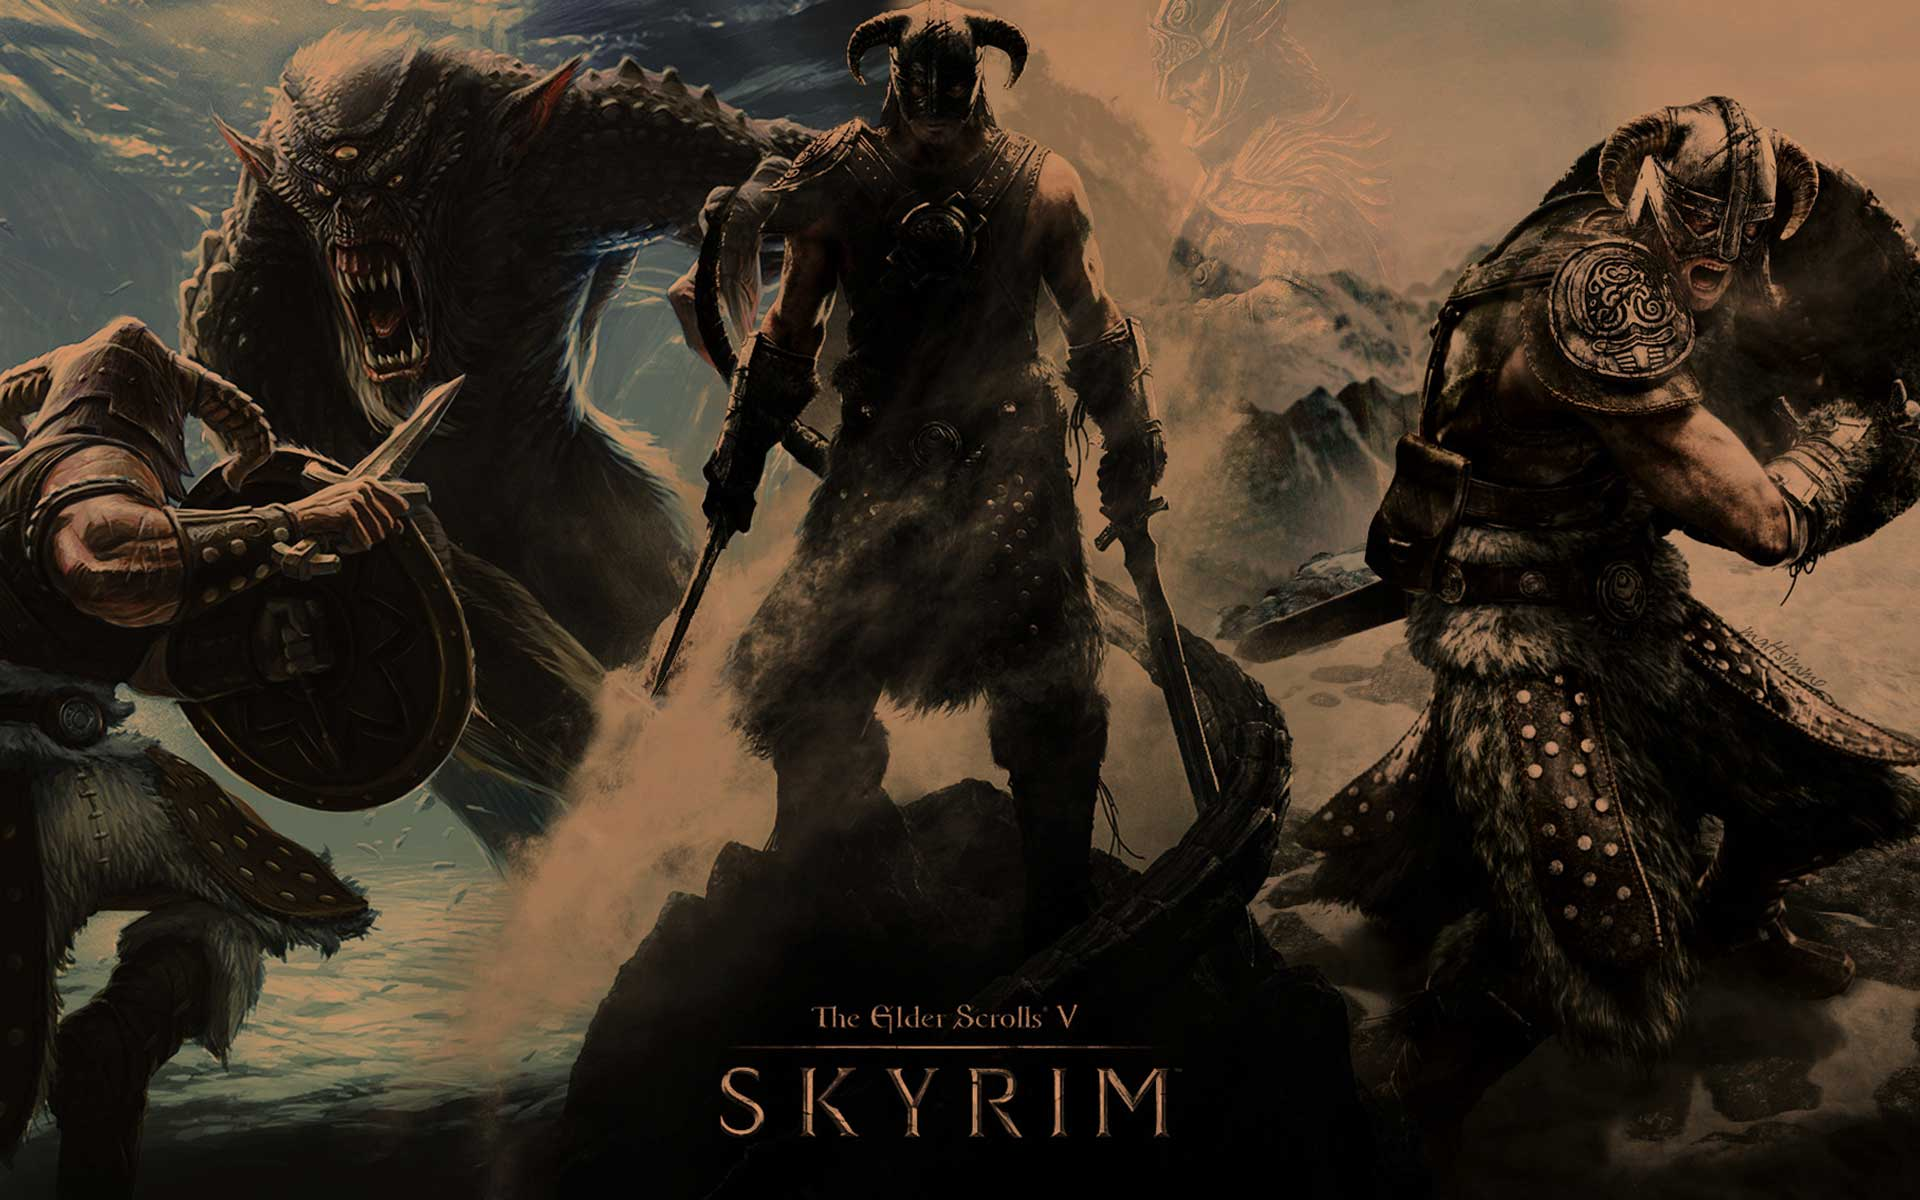 Wallpaper The Elder Scrolls V: Skyrim Dark